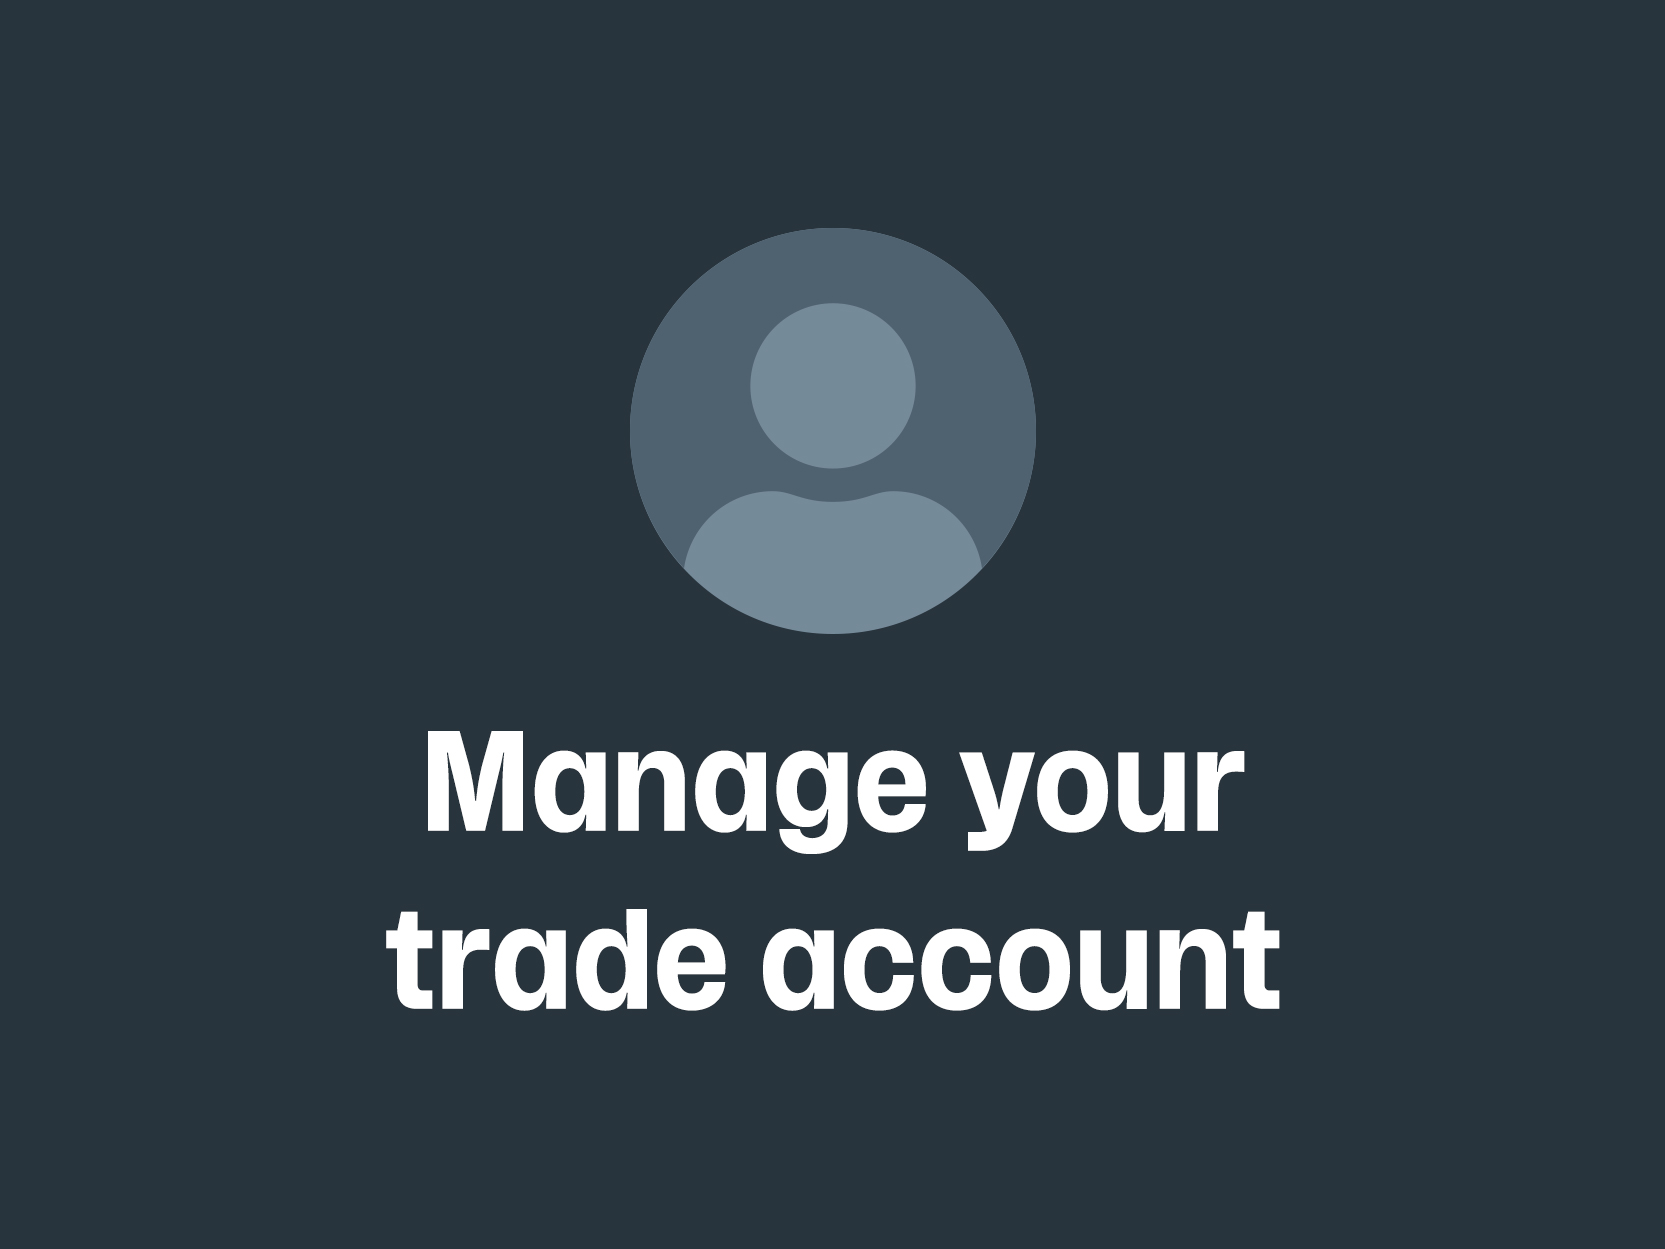 Manage your trade account